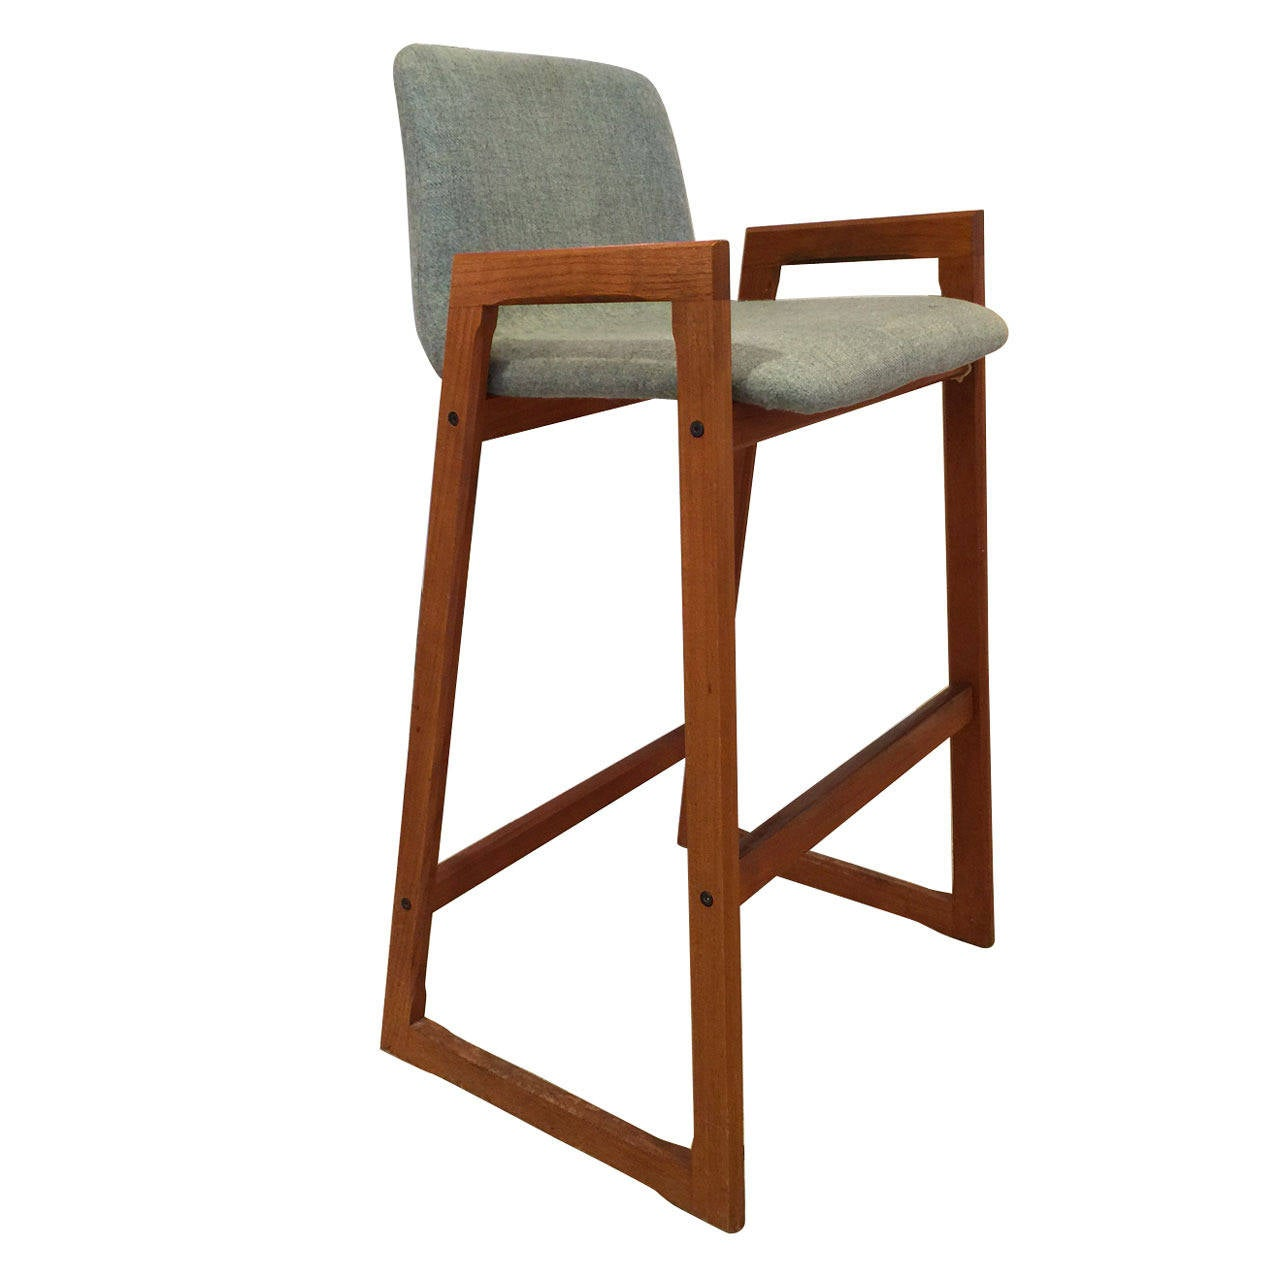 Vintage Danish Teak Bar Stool With Arms In Com 6